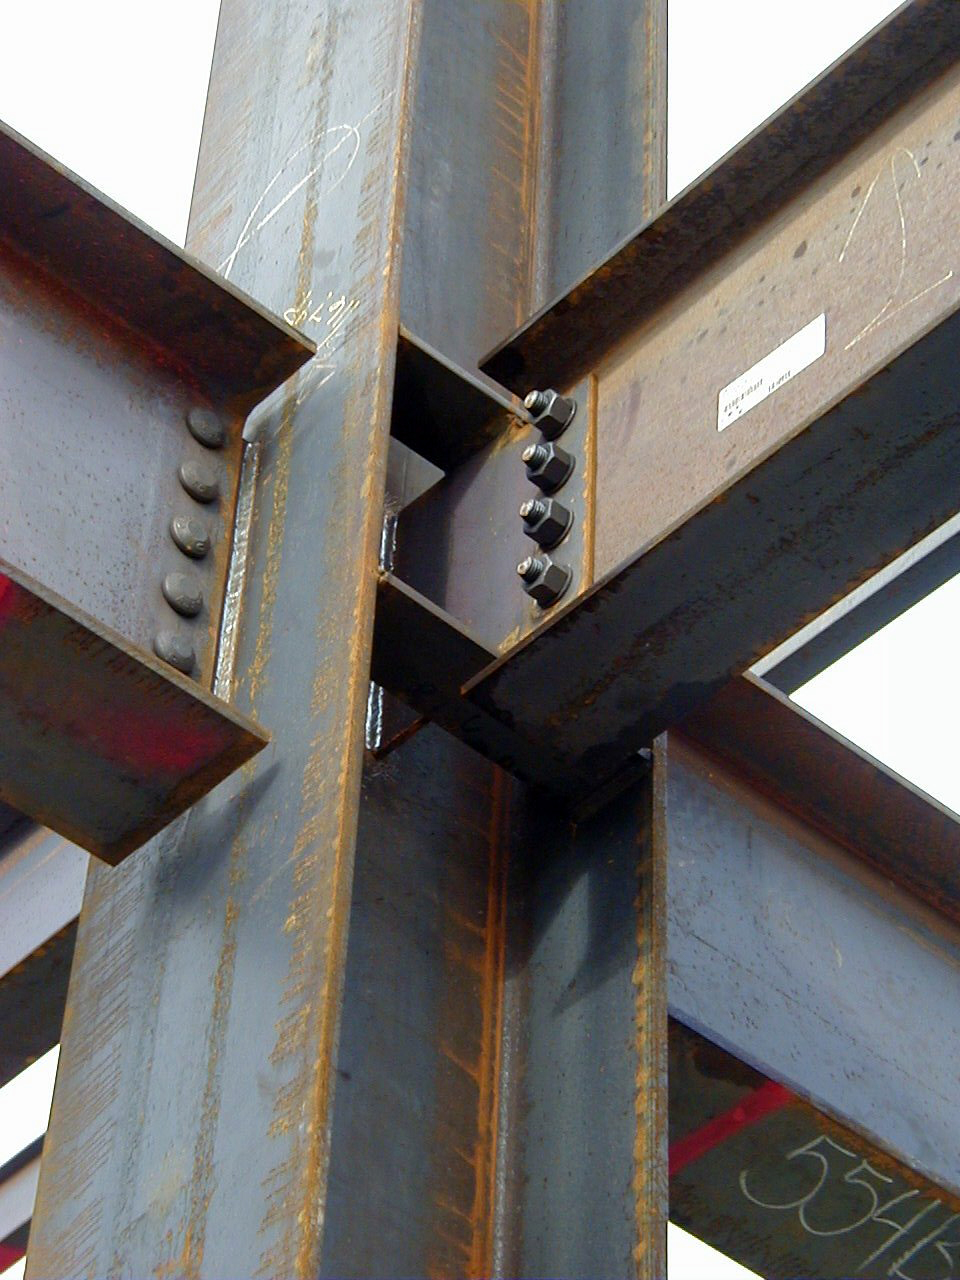 synopsys-connection-about-rf-stearns-structural-steel-construction.jpg